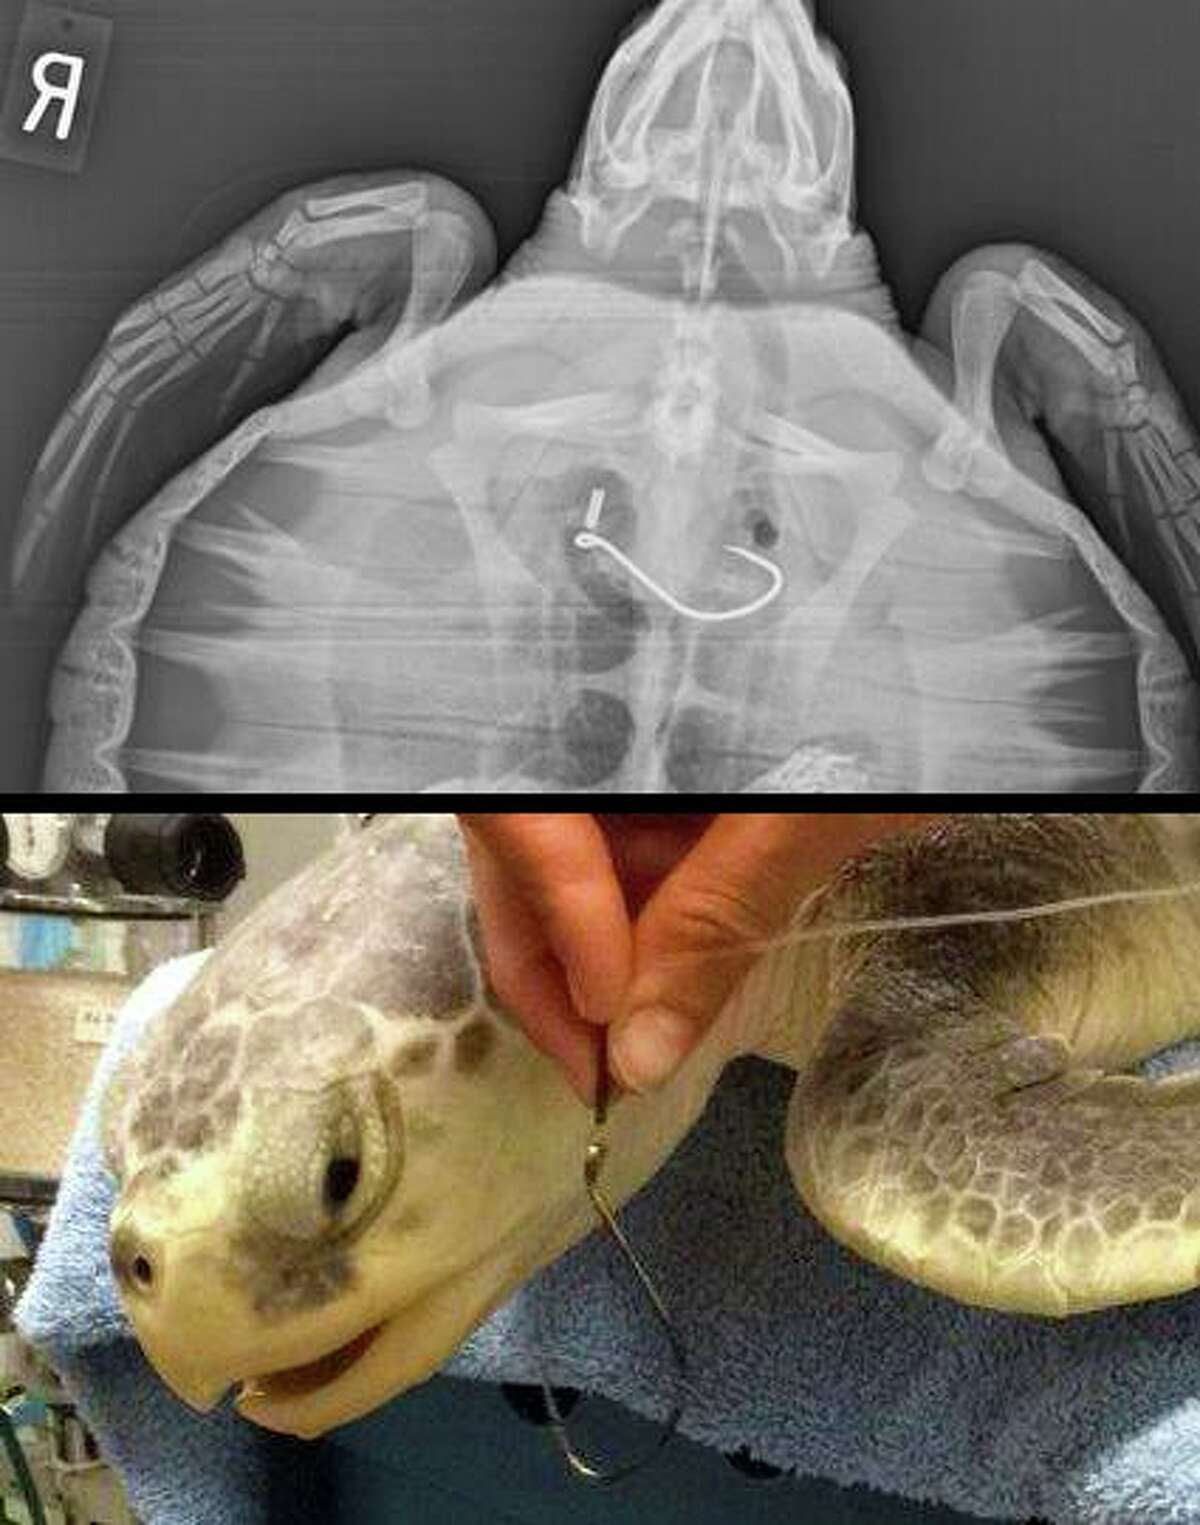 Sea turtles recovered by the National Oceanic and Atmospheric Administration Monday were given veterinary care Monday at the Houston Zoo. The sea turtles were brought back to Galveston later in the day Monday to NOAA for monitoring.